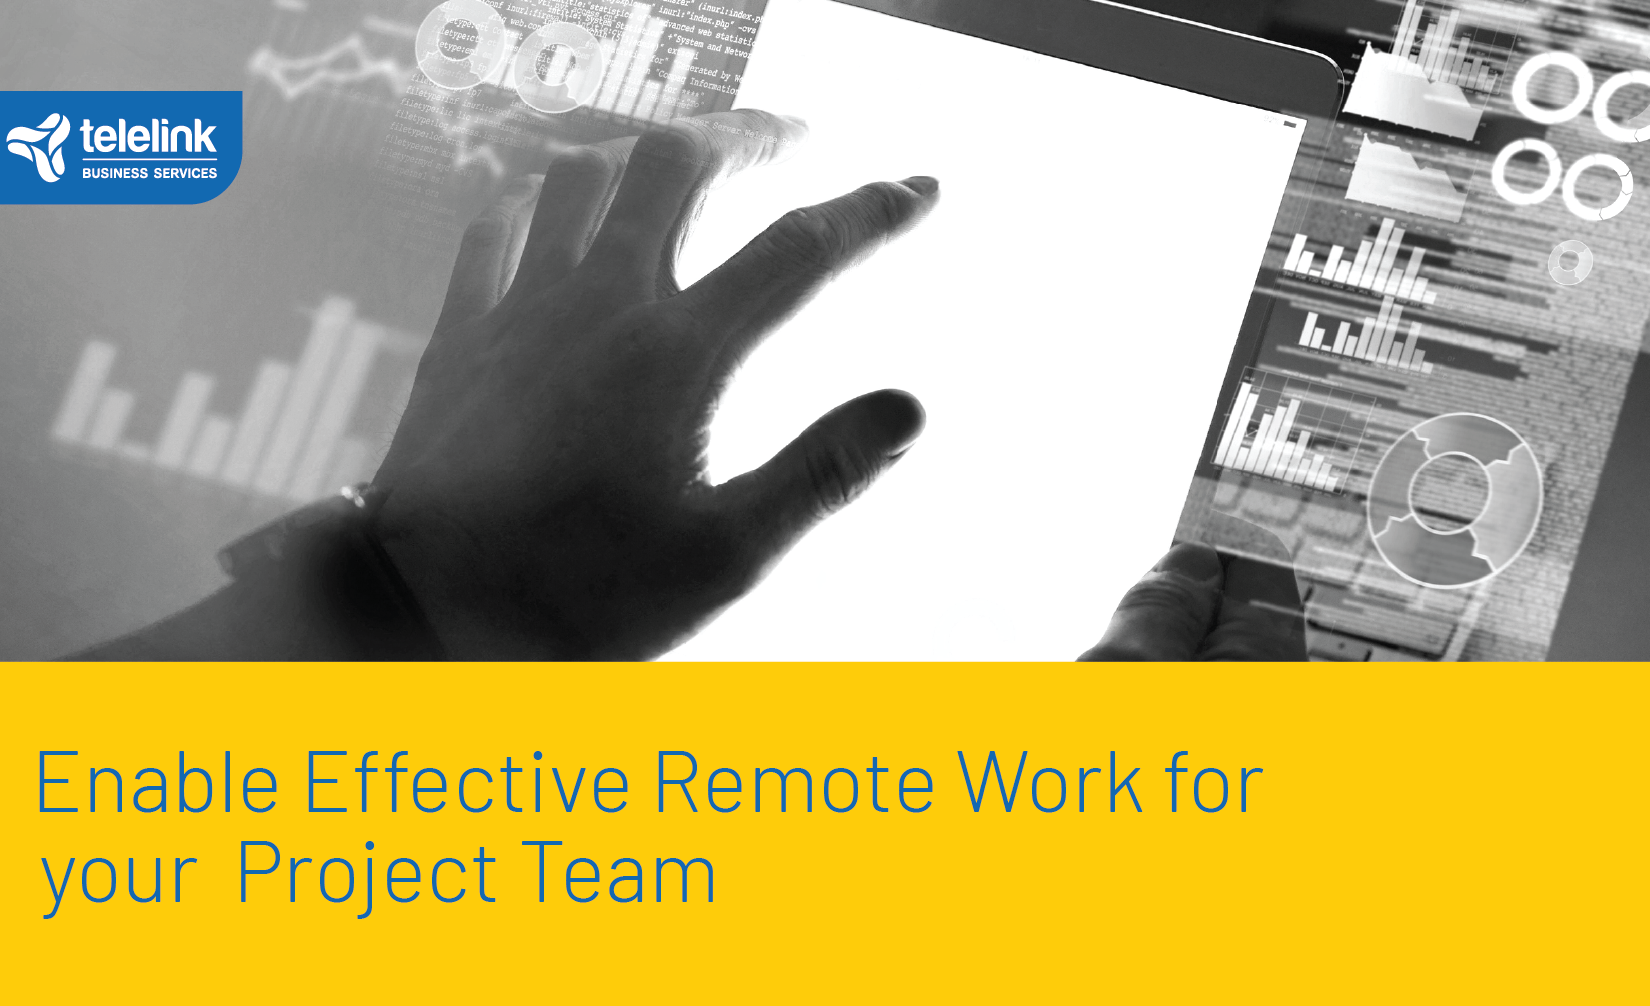 Enable Effective Remote Work for your Project Team